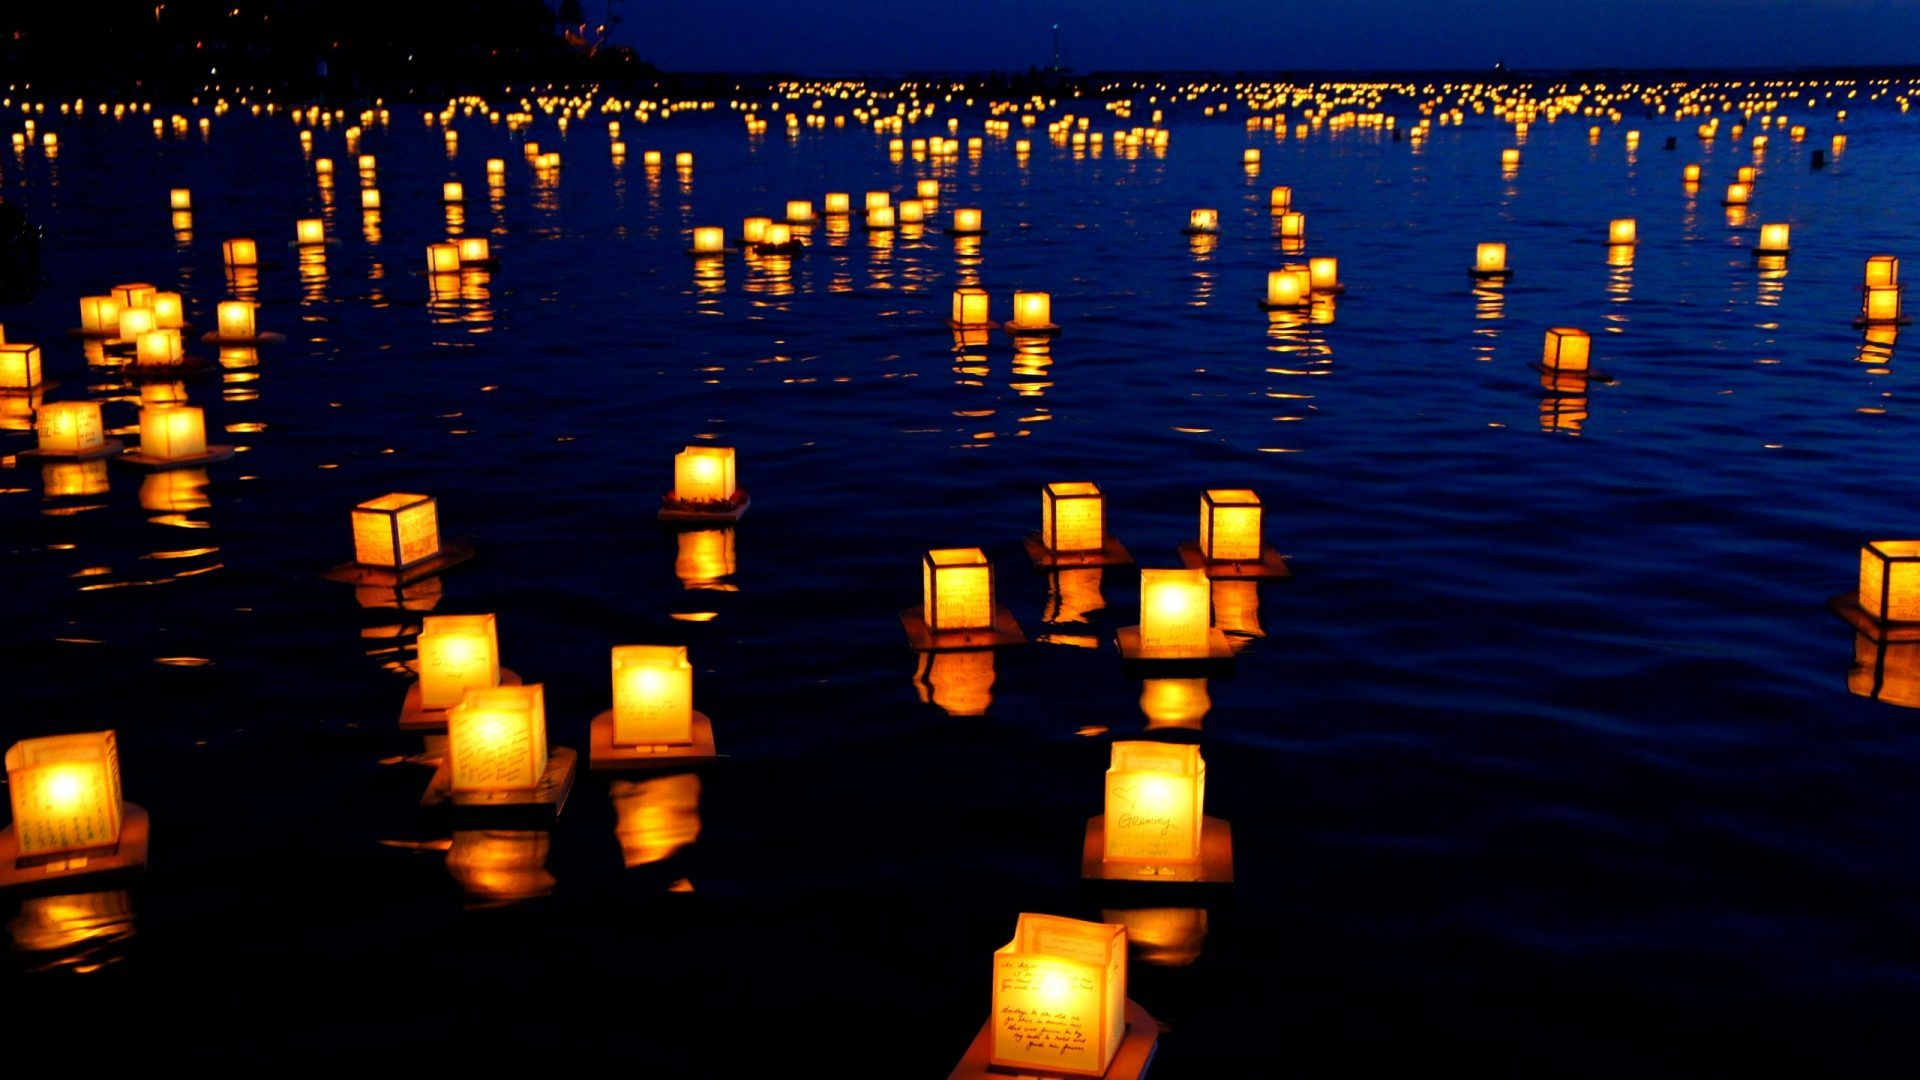 Lanterns Water Ocean Peaceful Nature Reflection Lake Blue View ... for Flying Lantern Wallpaper  75tgx